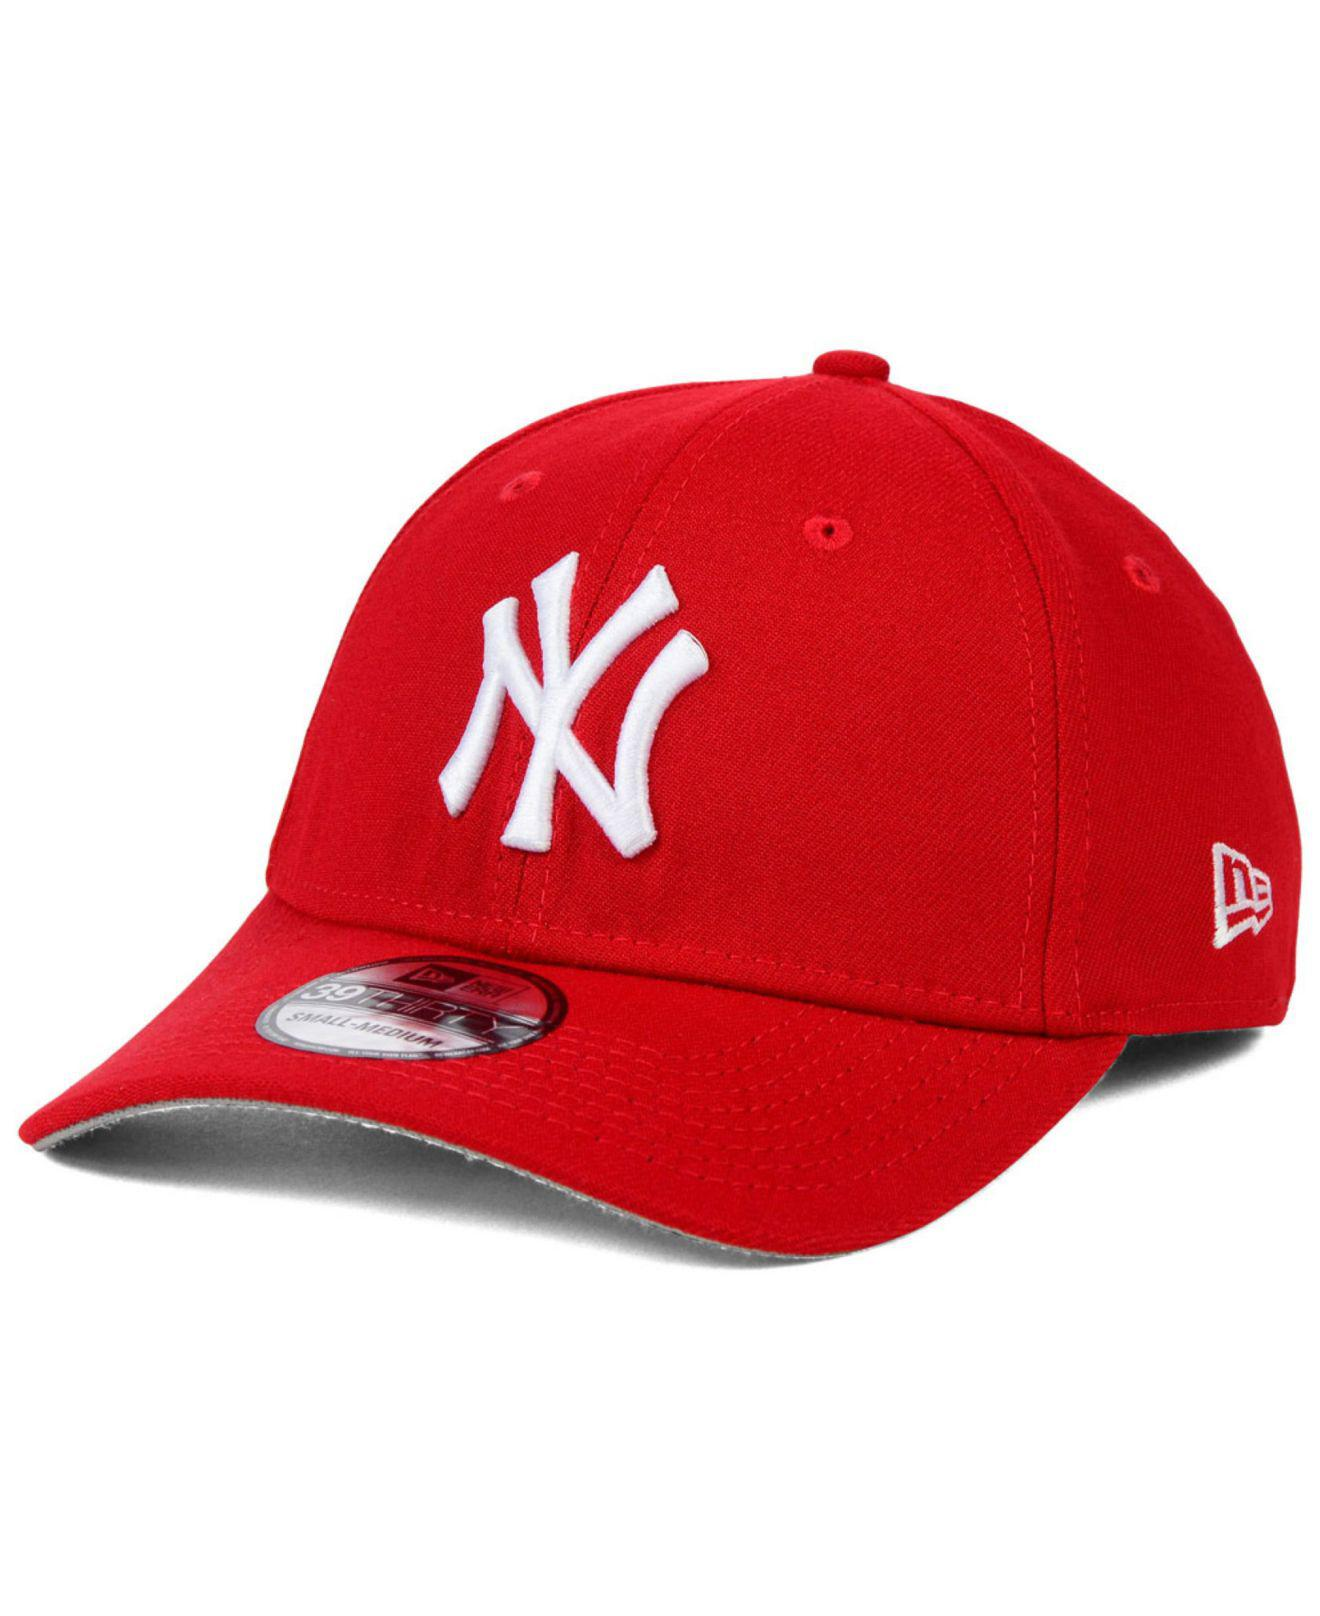 8b2c9488 Lyst - KTZ New York Yankees Fashion 39thirty Cap in Red for Men